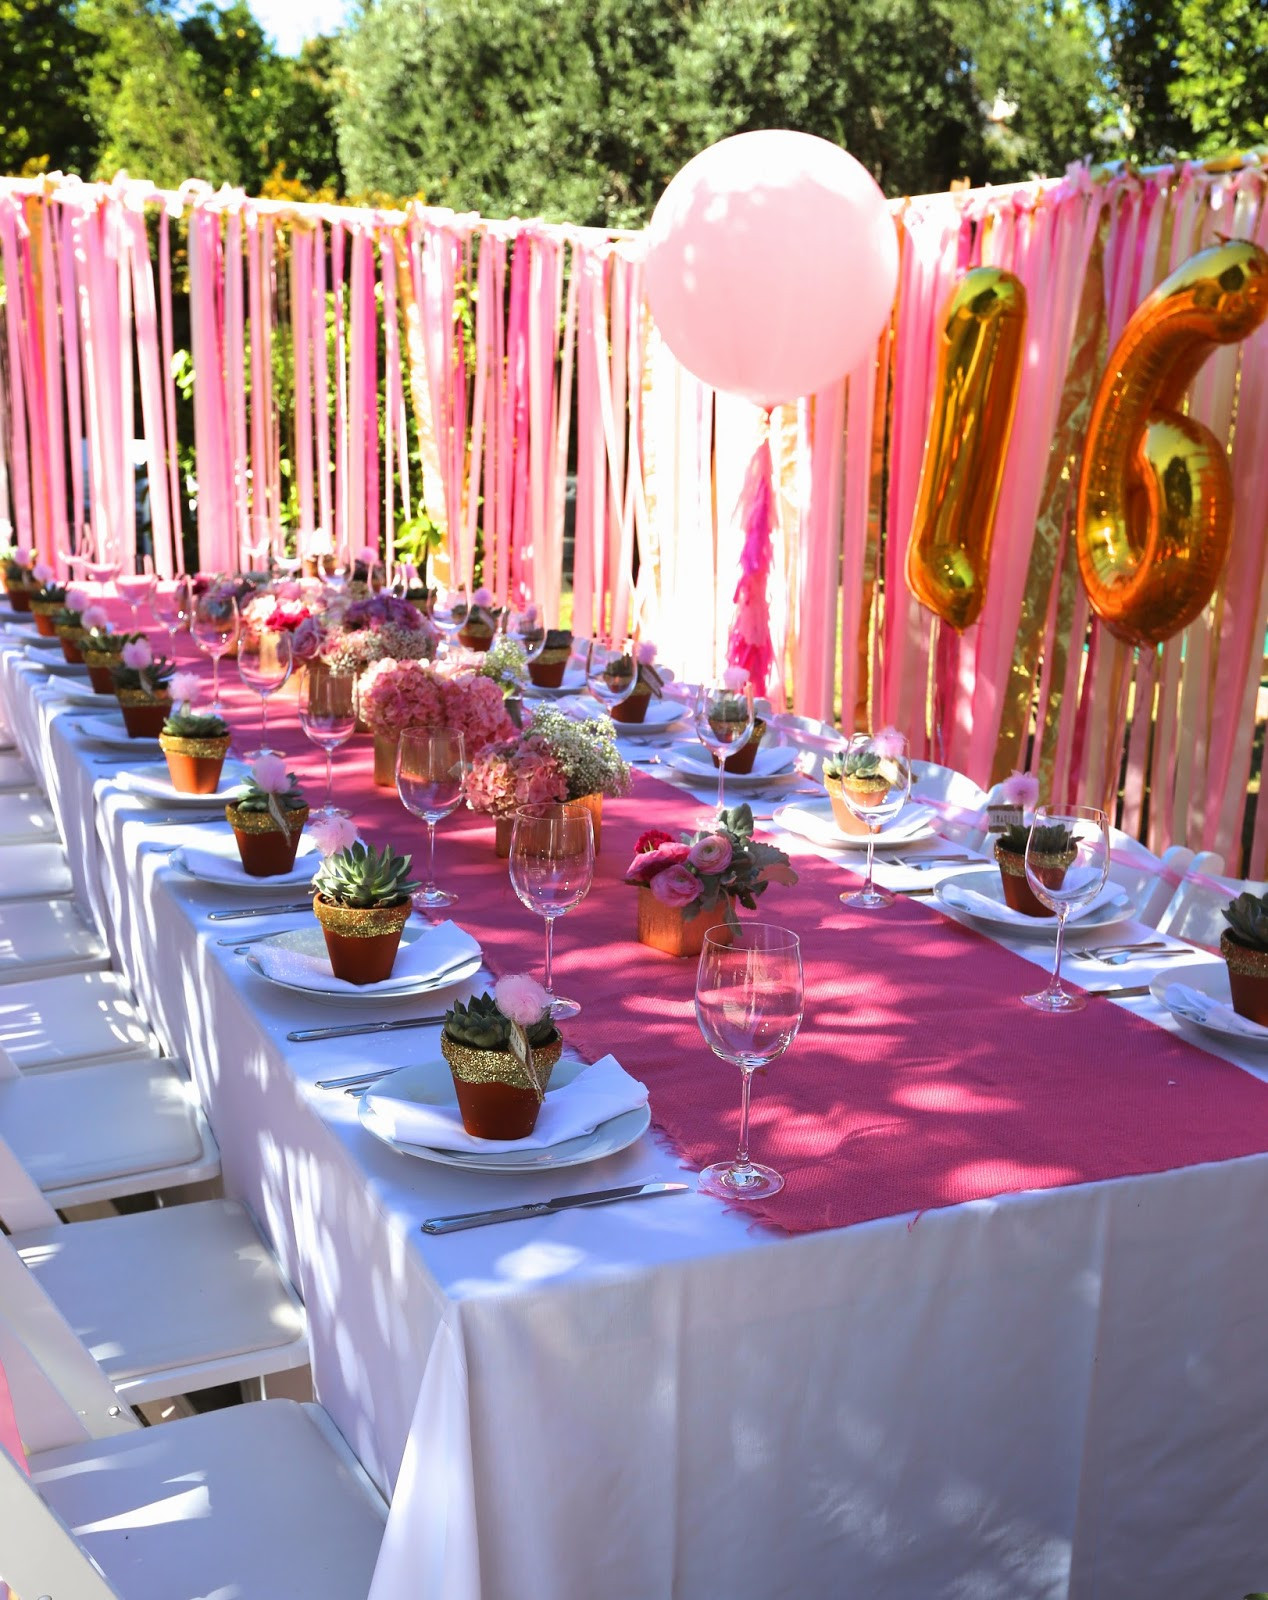 Birthday Decorations Ideas At Home  the COOP SWEET 16 Party at Home